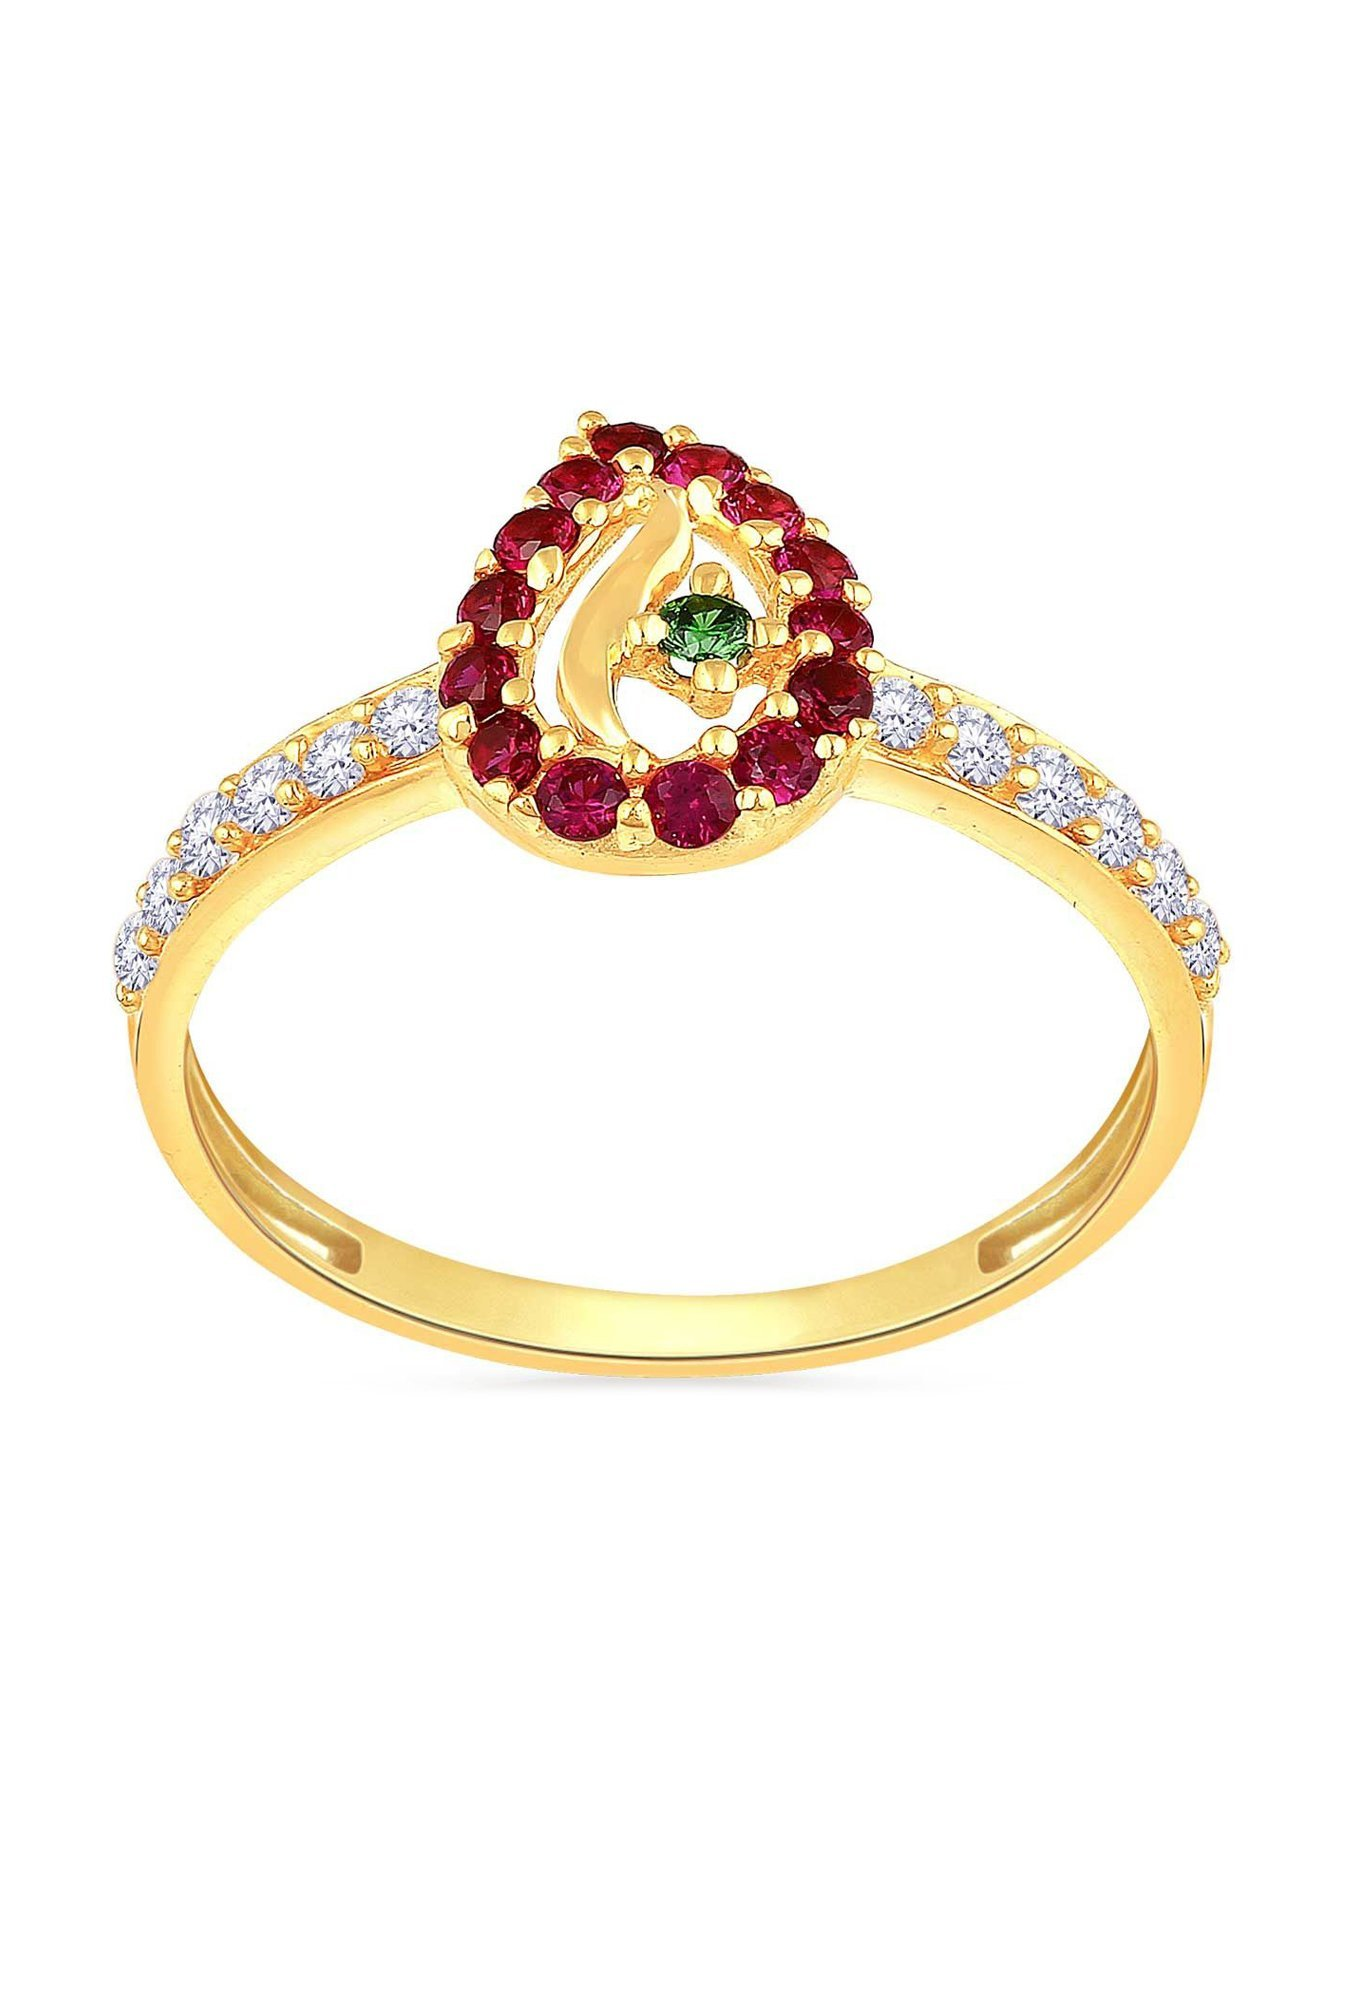 rings fleur gold shop crownhearts chrome ring fleurdilis hearts engagement de gents lis products diamond